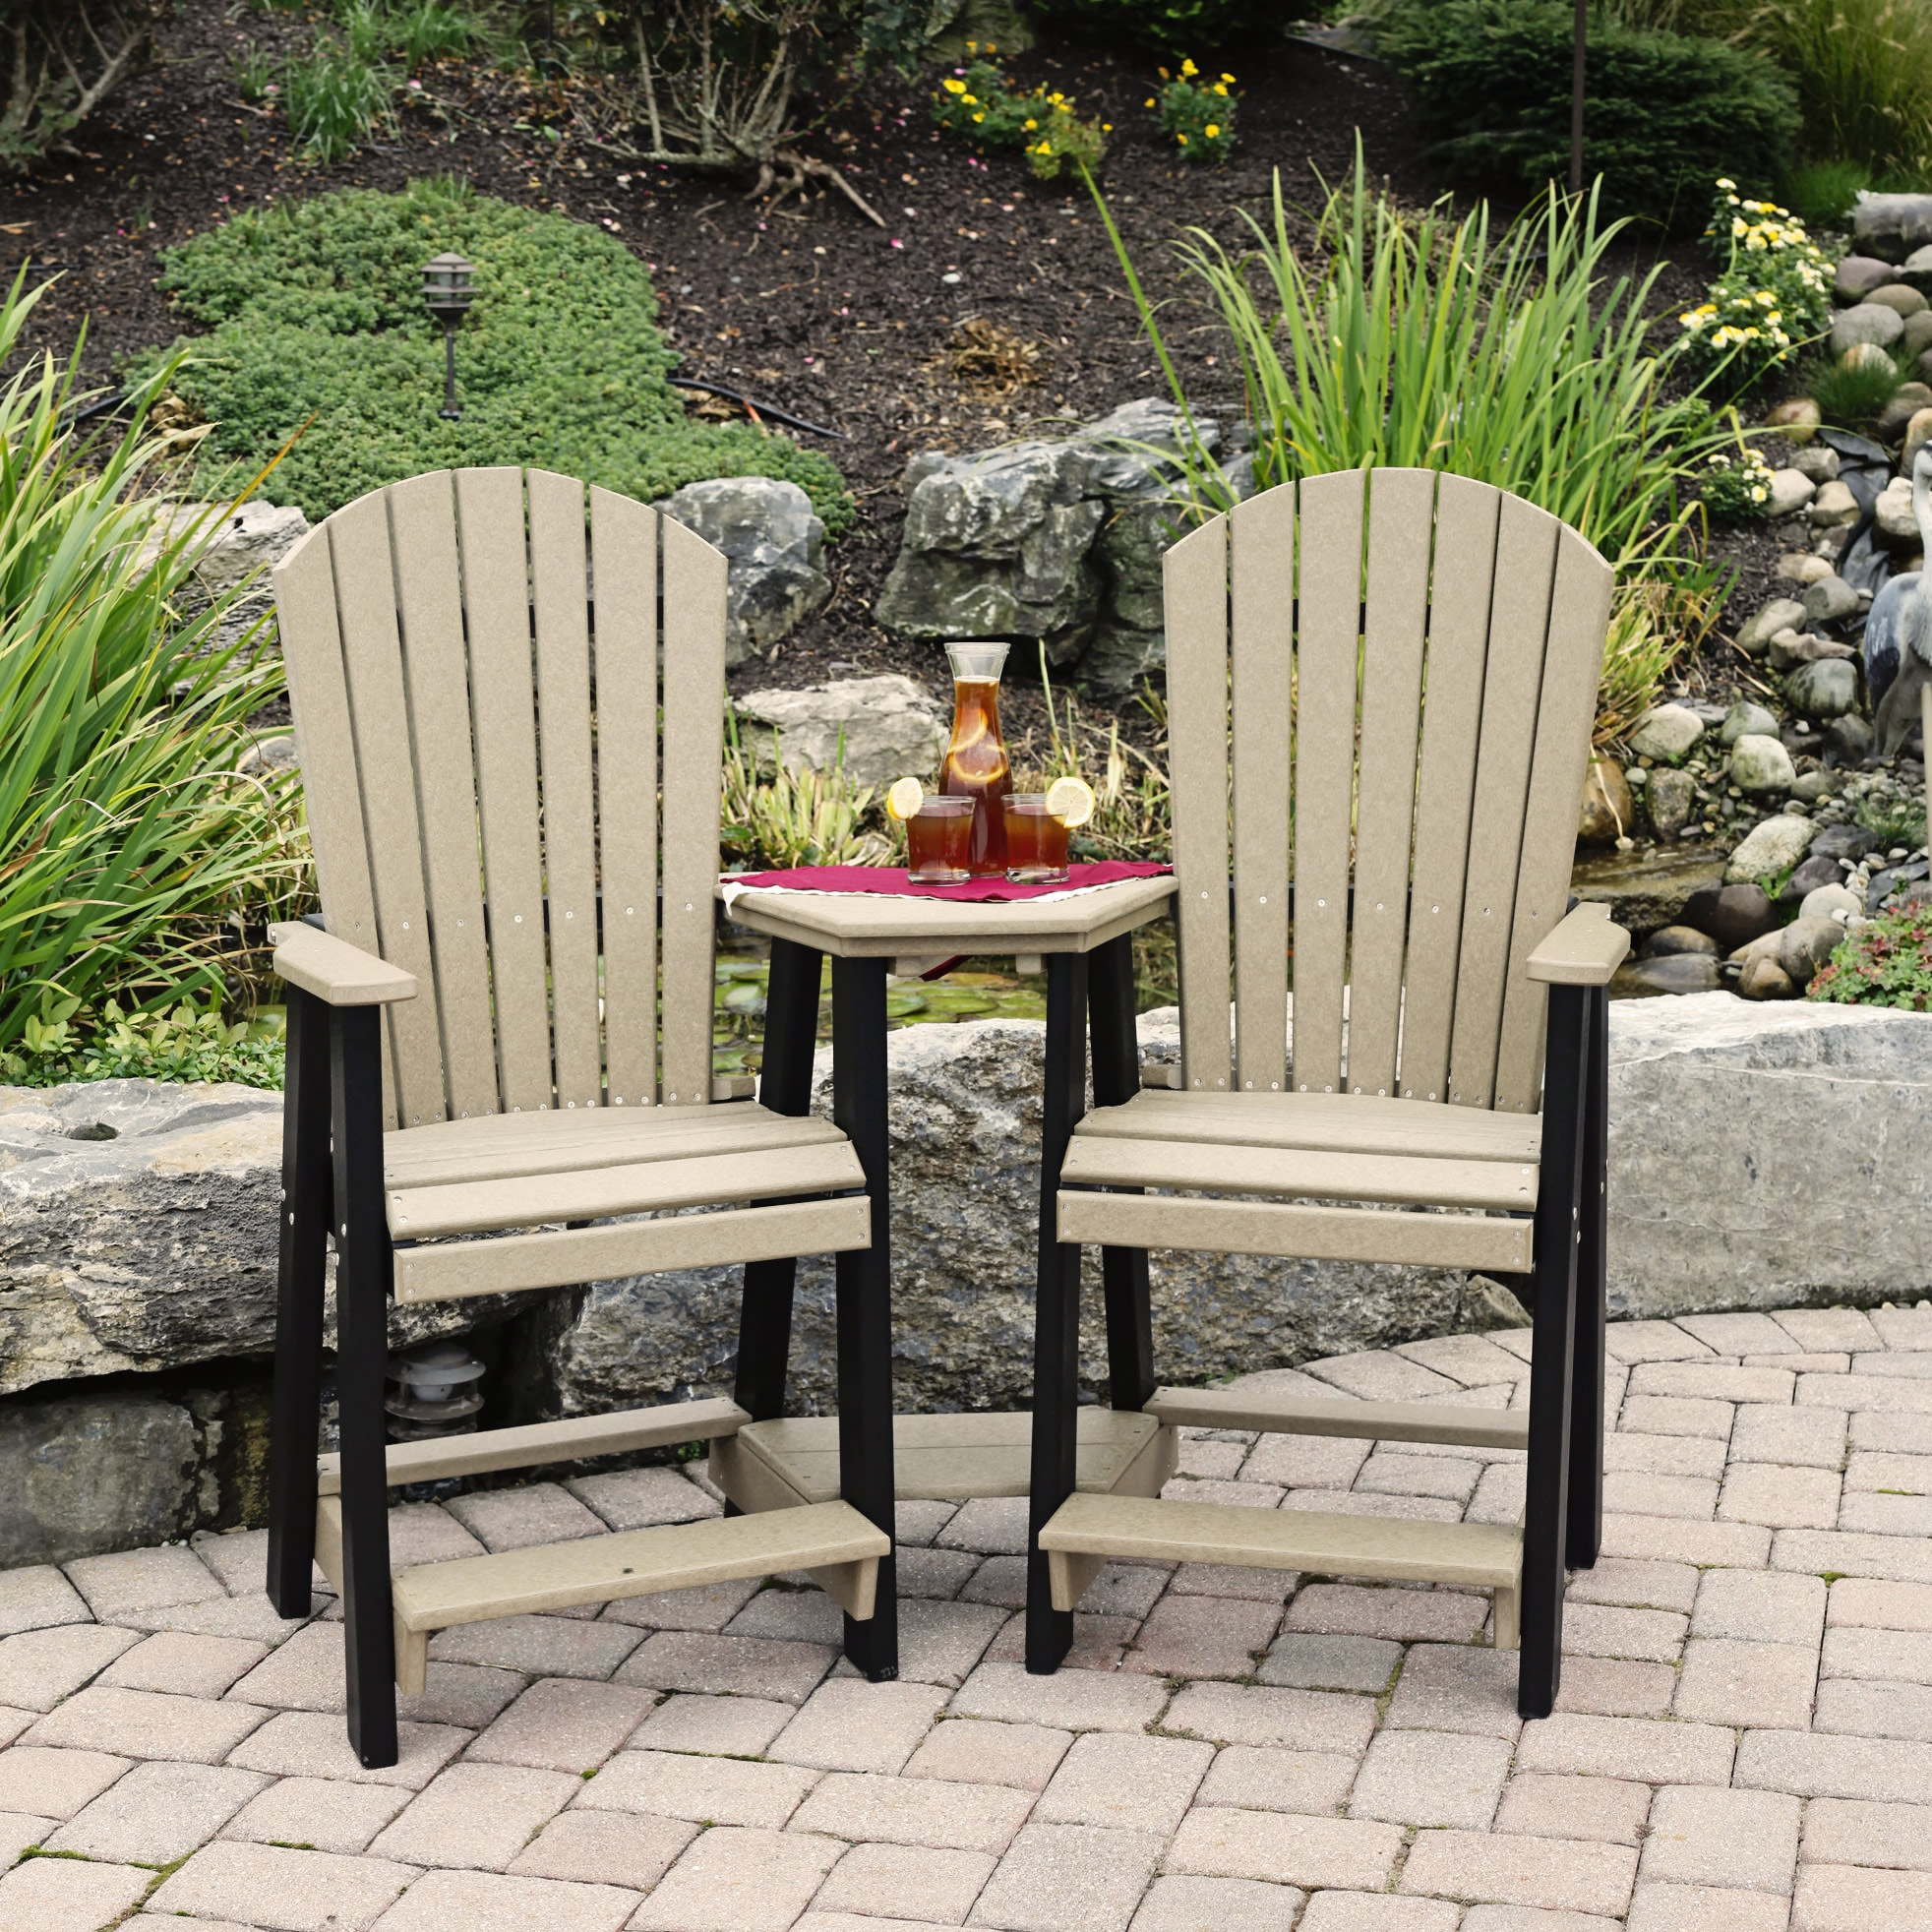 Best ideas about Recycled Plastic Patio Furniture . Save or Pin Amish Recycled Plastic Outdoor Furniture Garden Old Now.